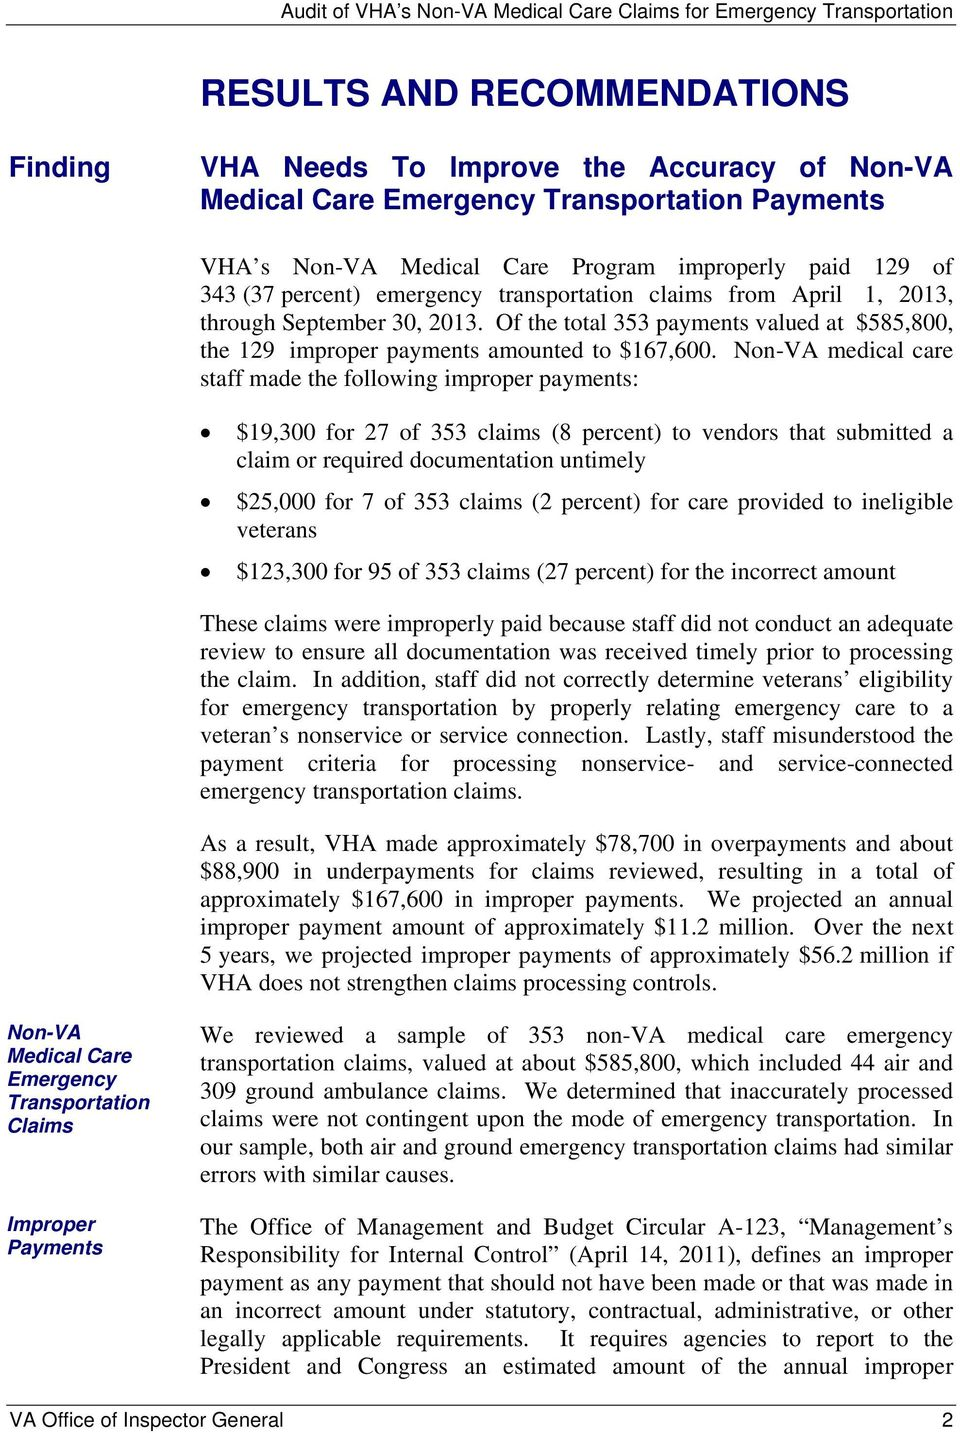 Non-VA medical care staff made the following improper payments: $19,300 for 27 of 353 claims (8 percent) to vendors that submitted a claim or required documentation untimely $25,000 for 7 of 353